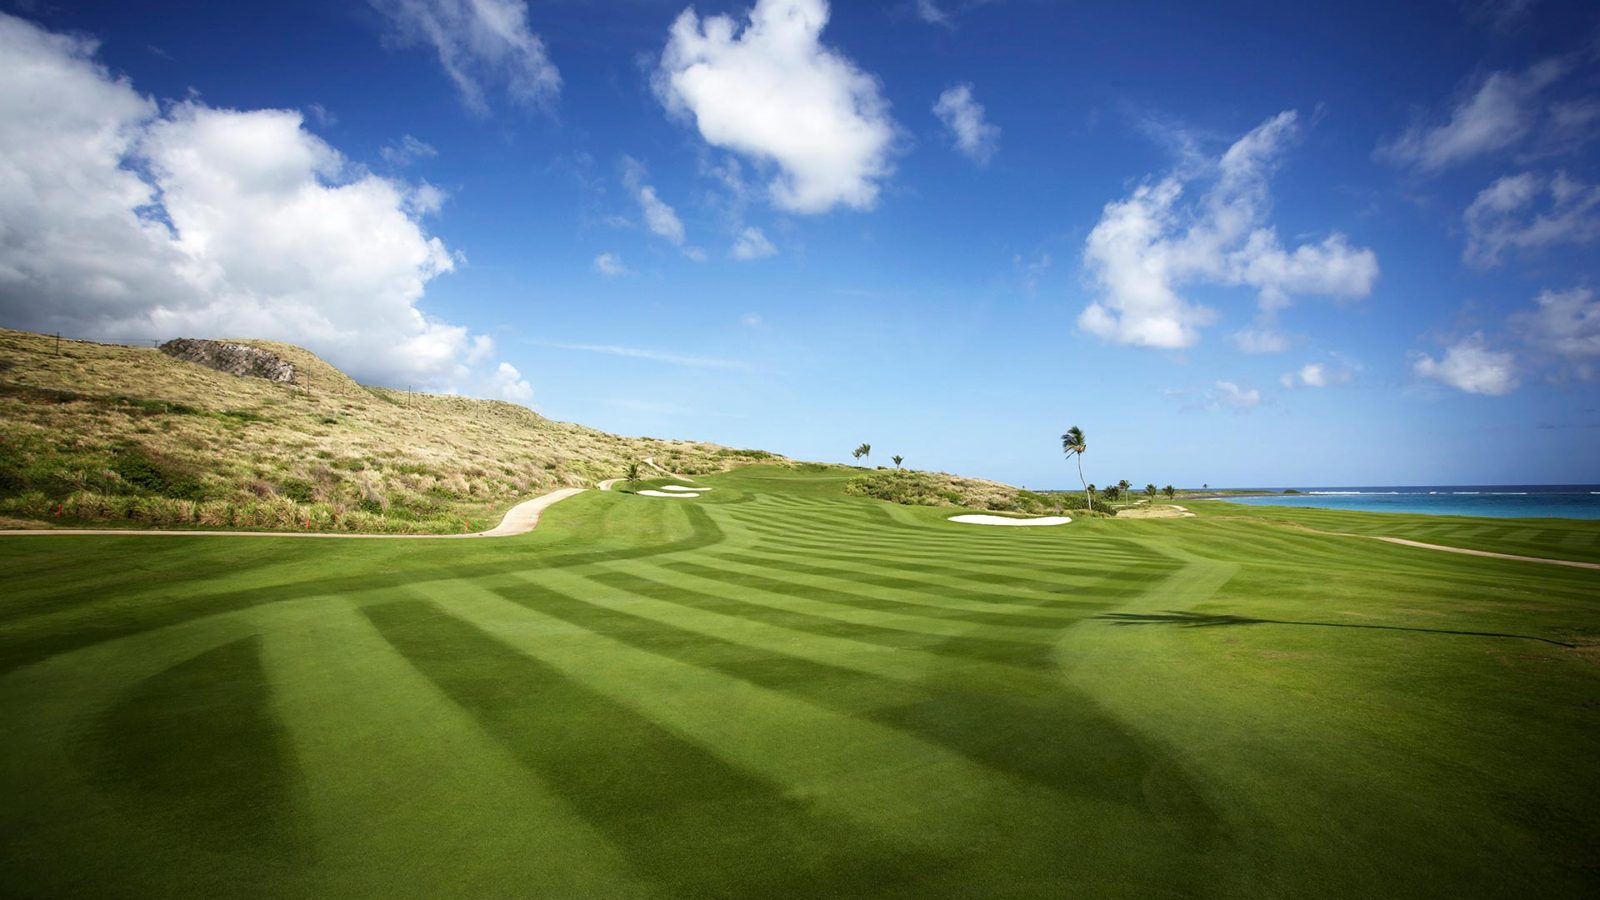 Royal-St.-Kitts-Golf-Club